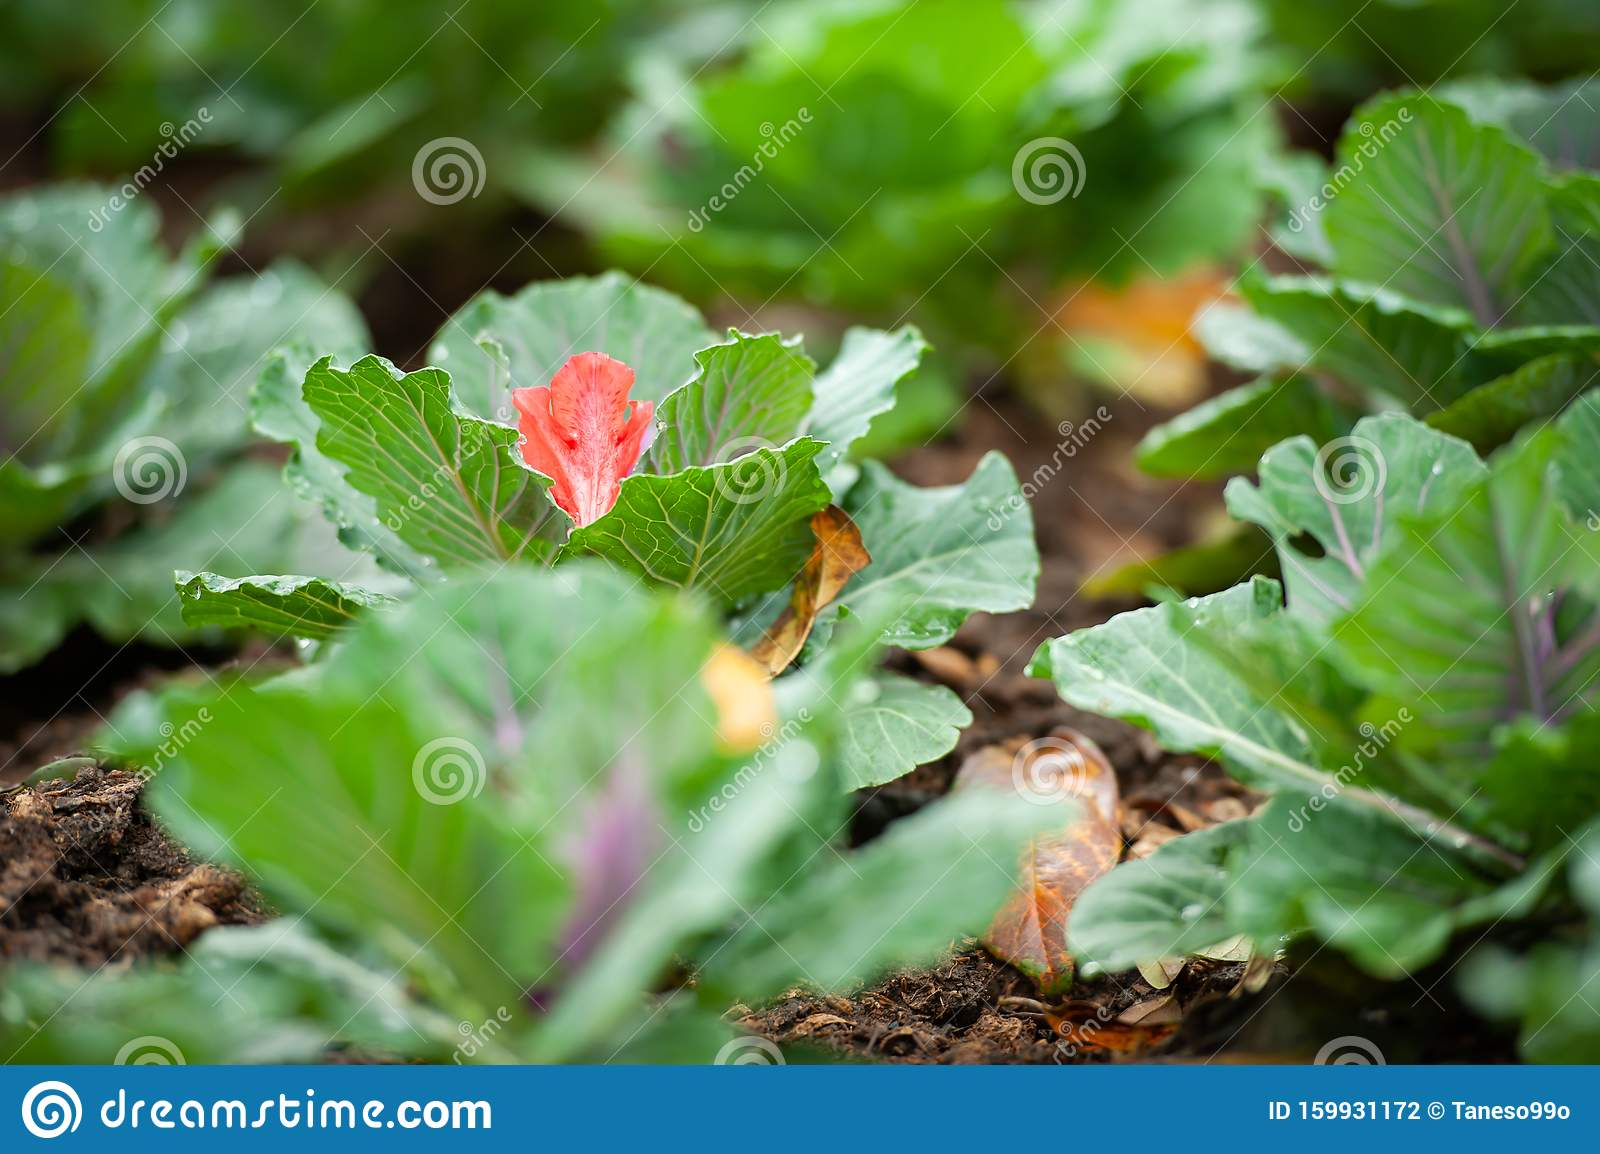 Pink Rhododendron Flower Falling On Cabbage Stock Photo Image Of